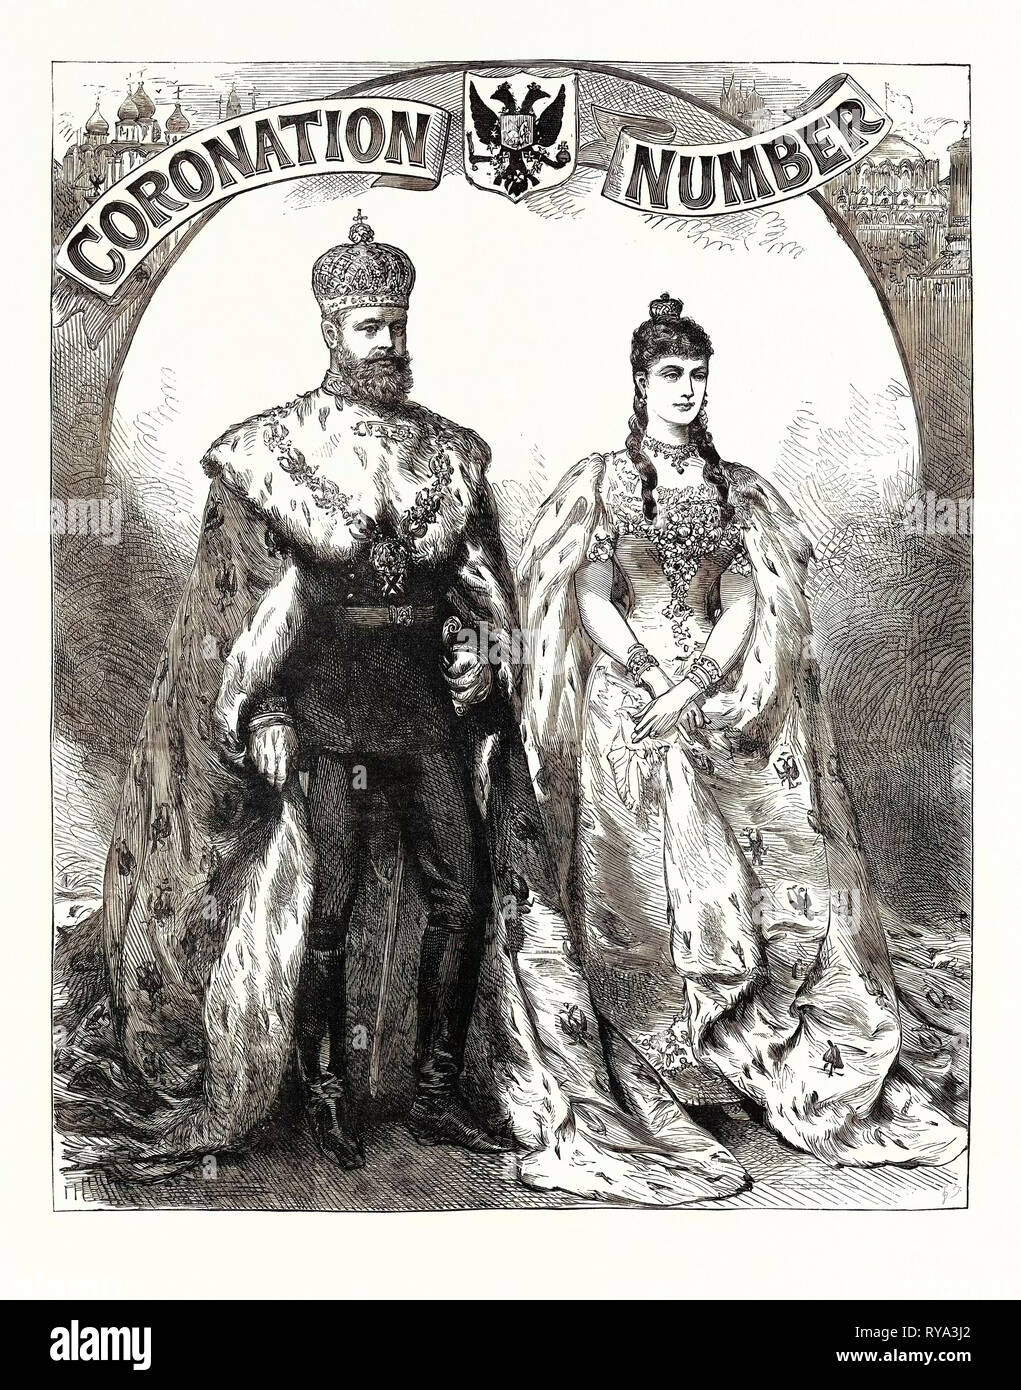 The Emperor and Empress of Russia in Their Coronation Robes, 1883 - Stock Image